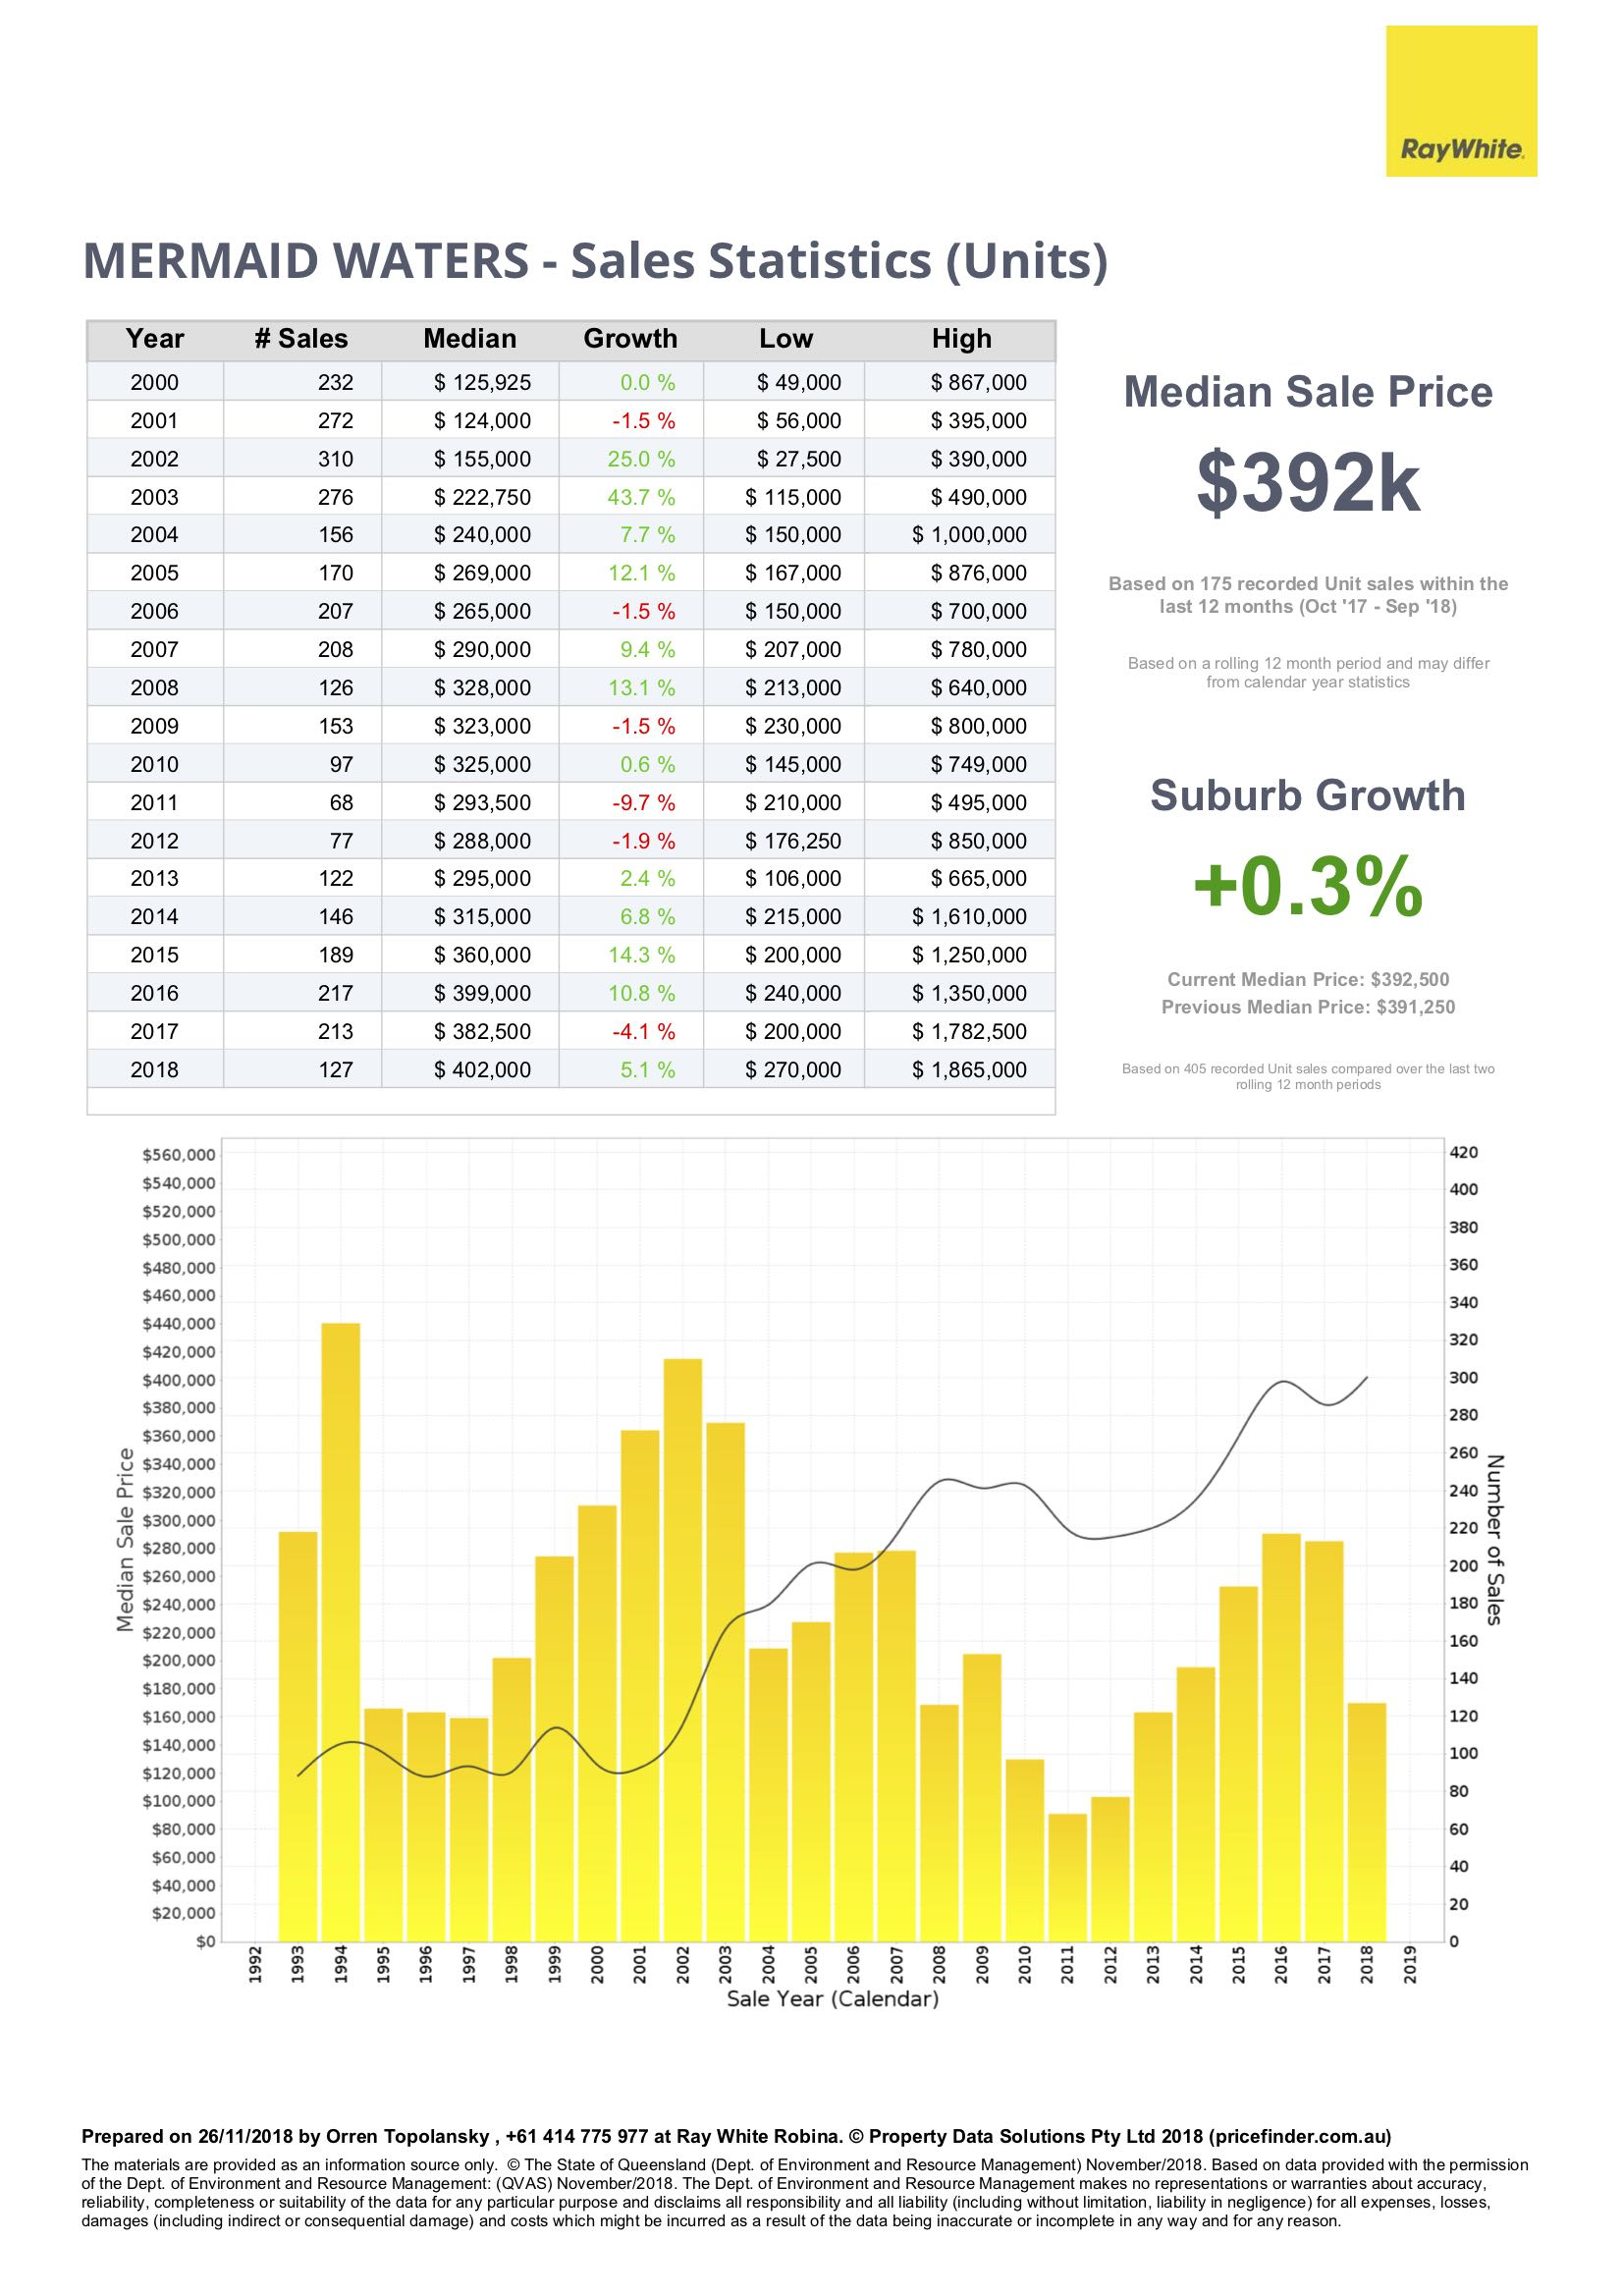 Price statistics for units in Mermaid Waters, Gold Coast, Queensland